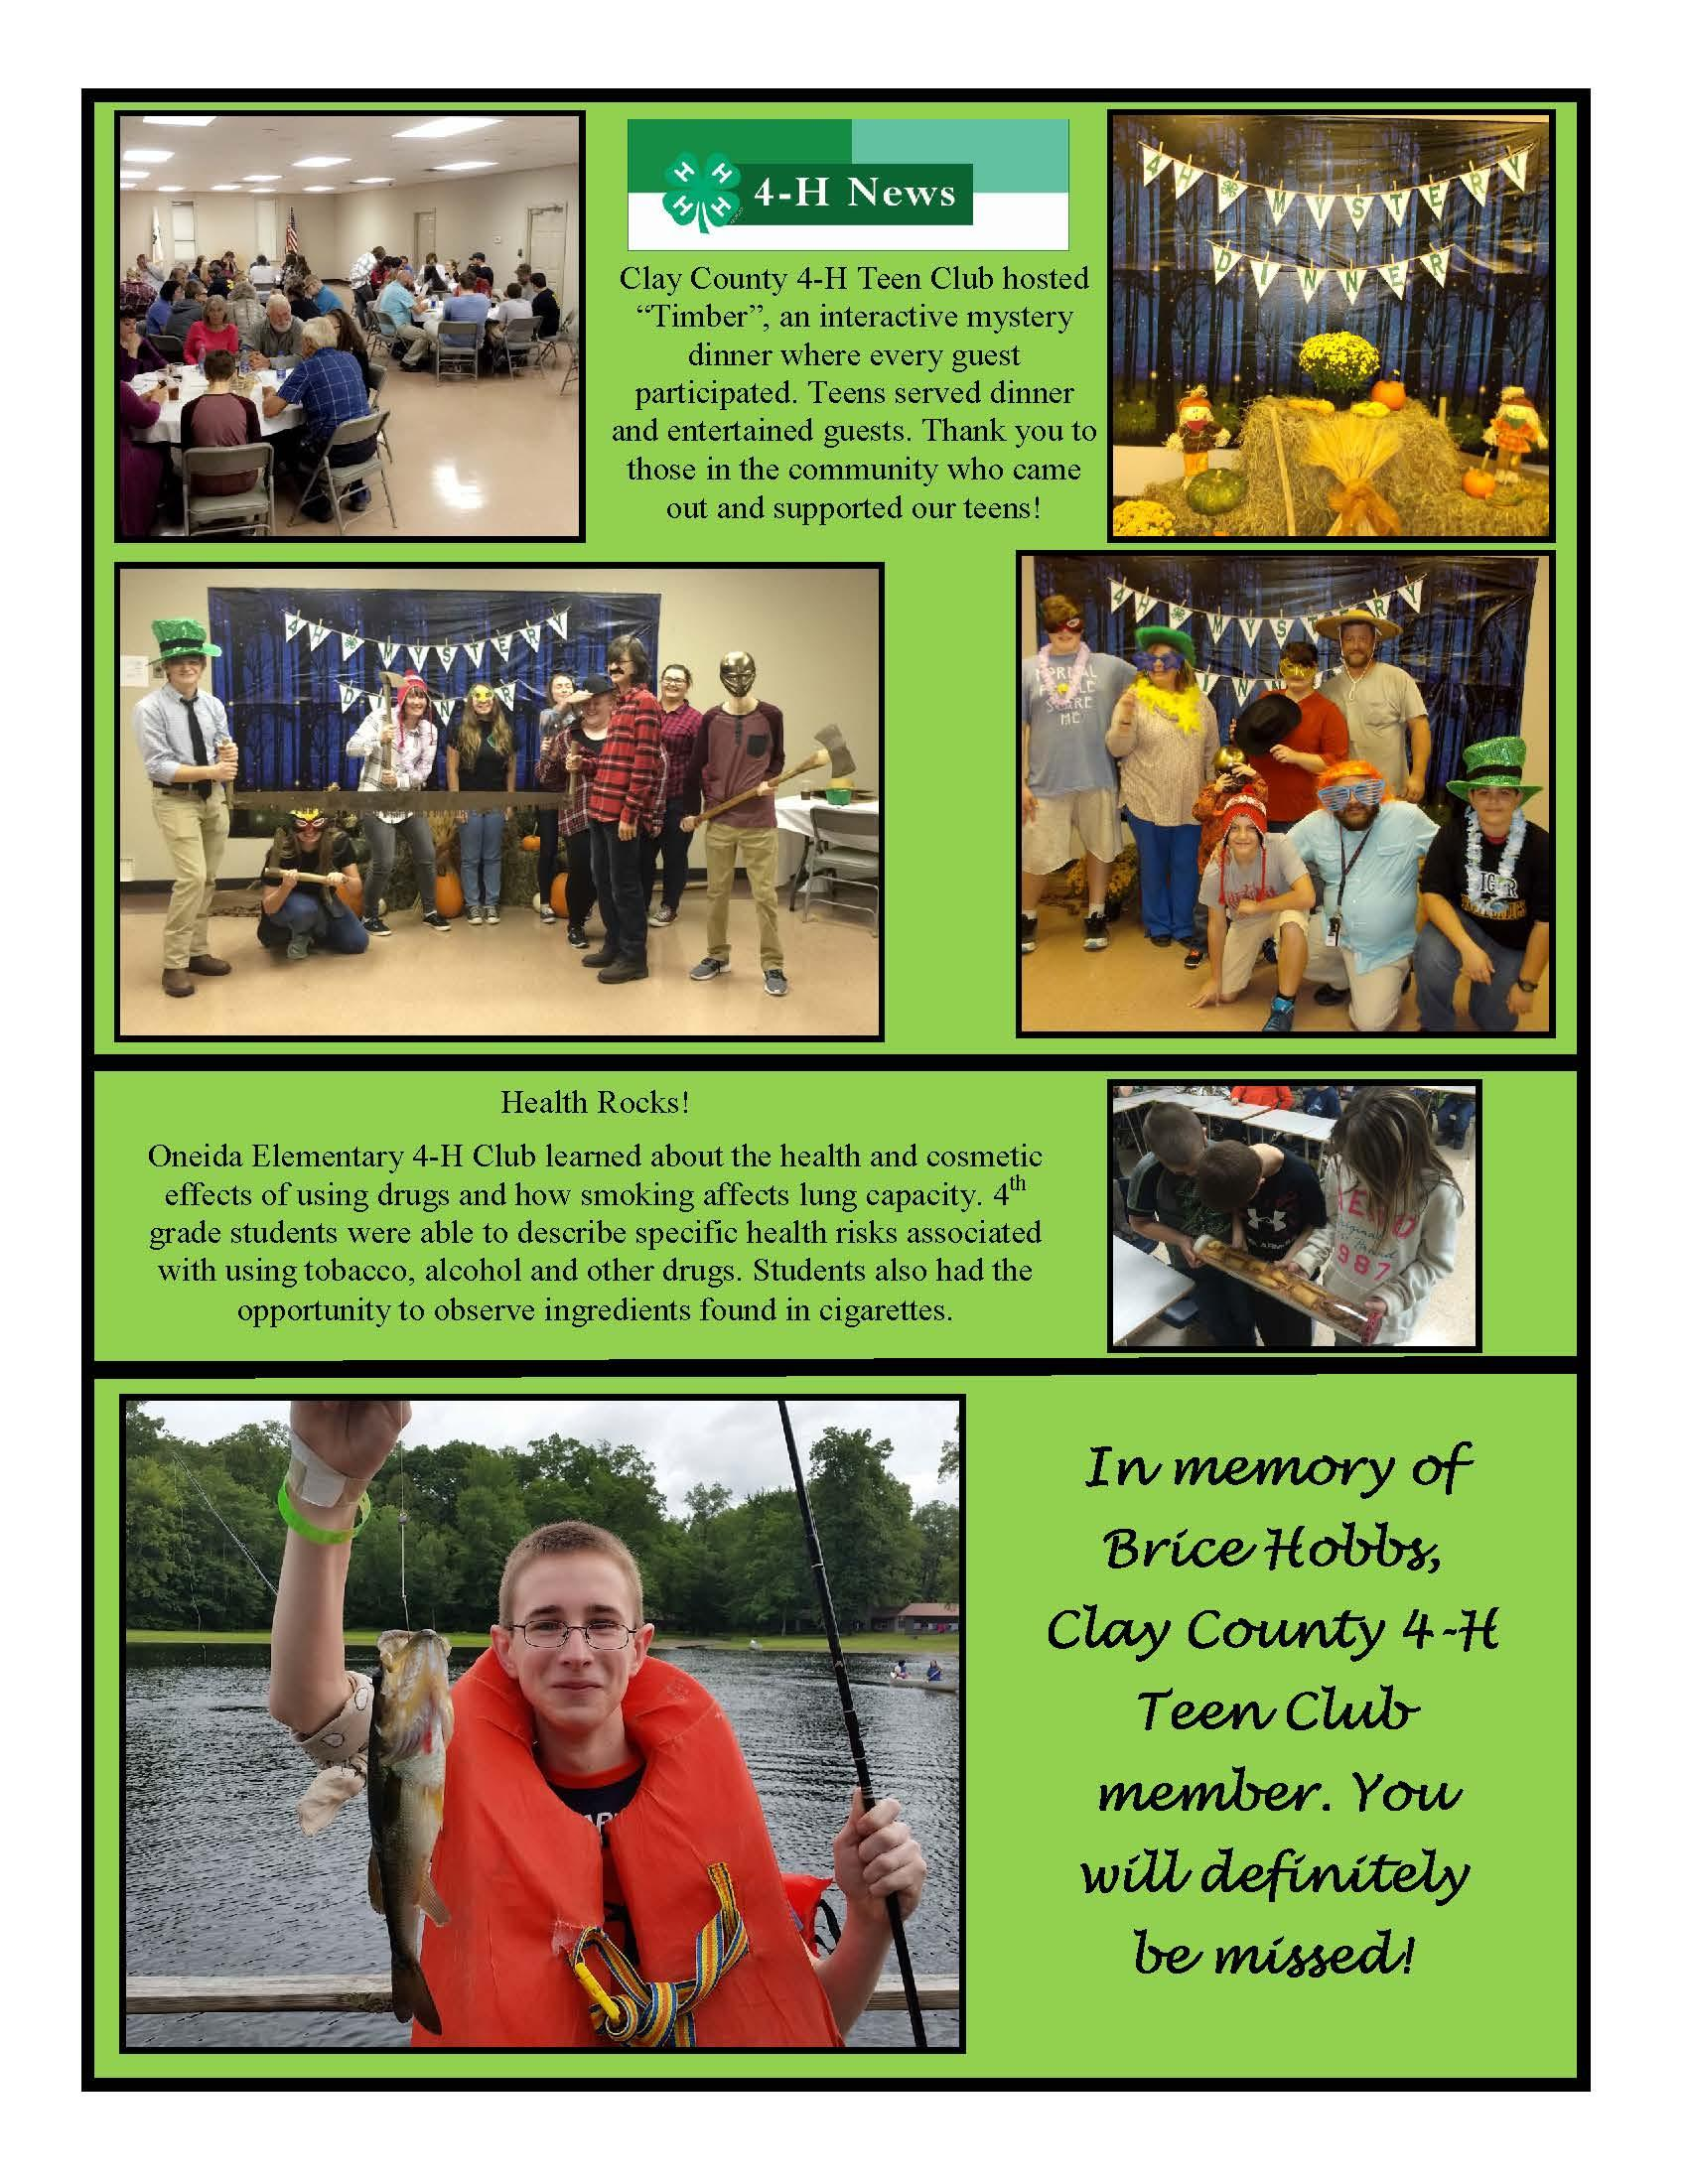 4-H News and pictures